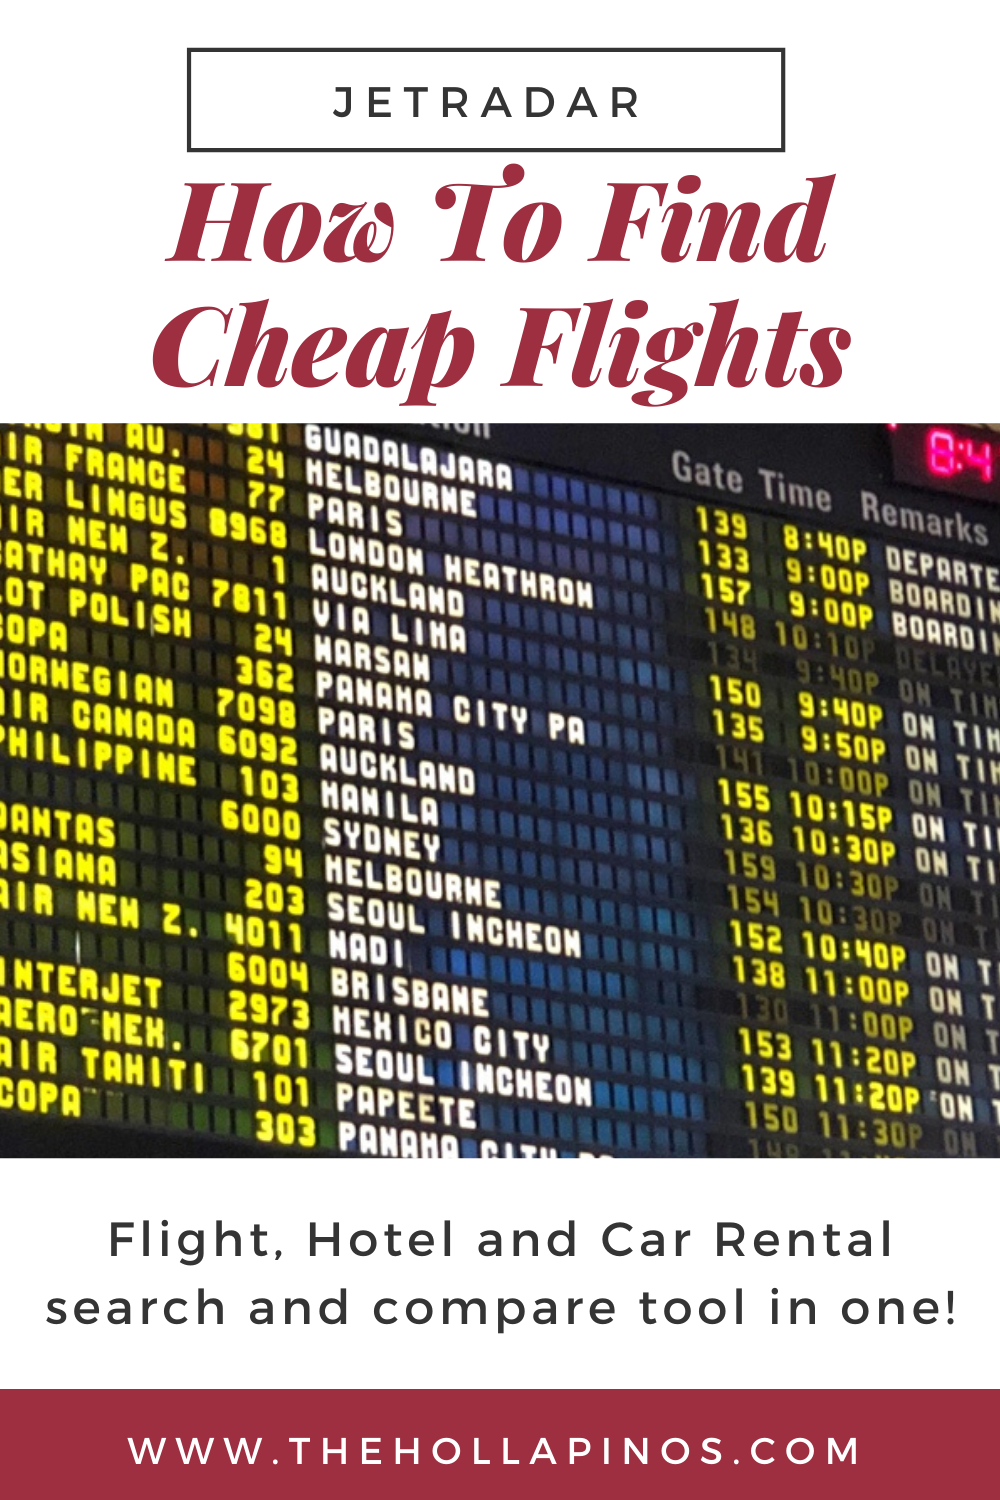 Flights take the most amount from our travel budget. Jetradar will help you on how to find cheap flights using either web or mobile application.  #findcheapflights #cheapflights #jetradar